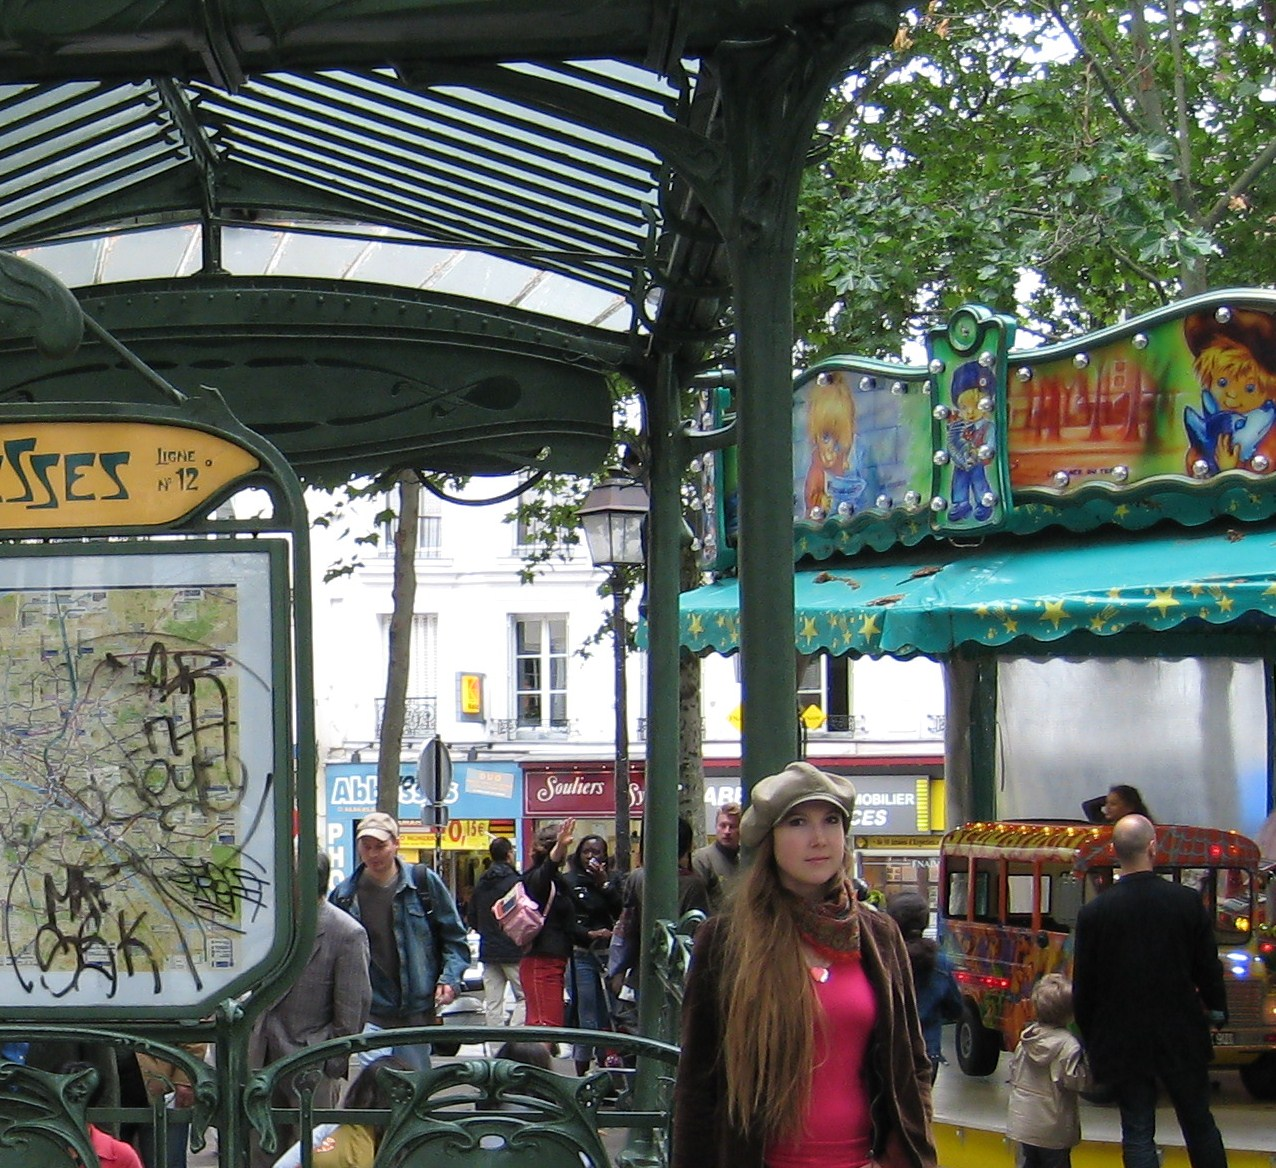 Me, at the Abbesses metro station in Montmartre, Paris